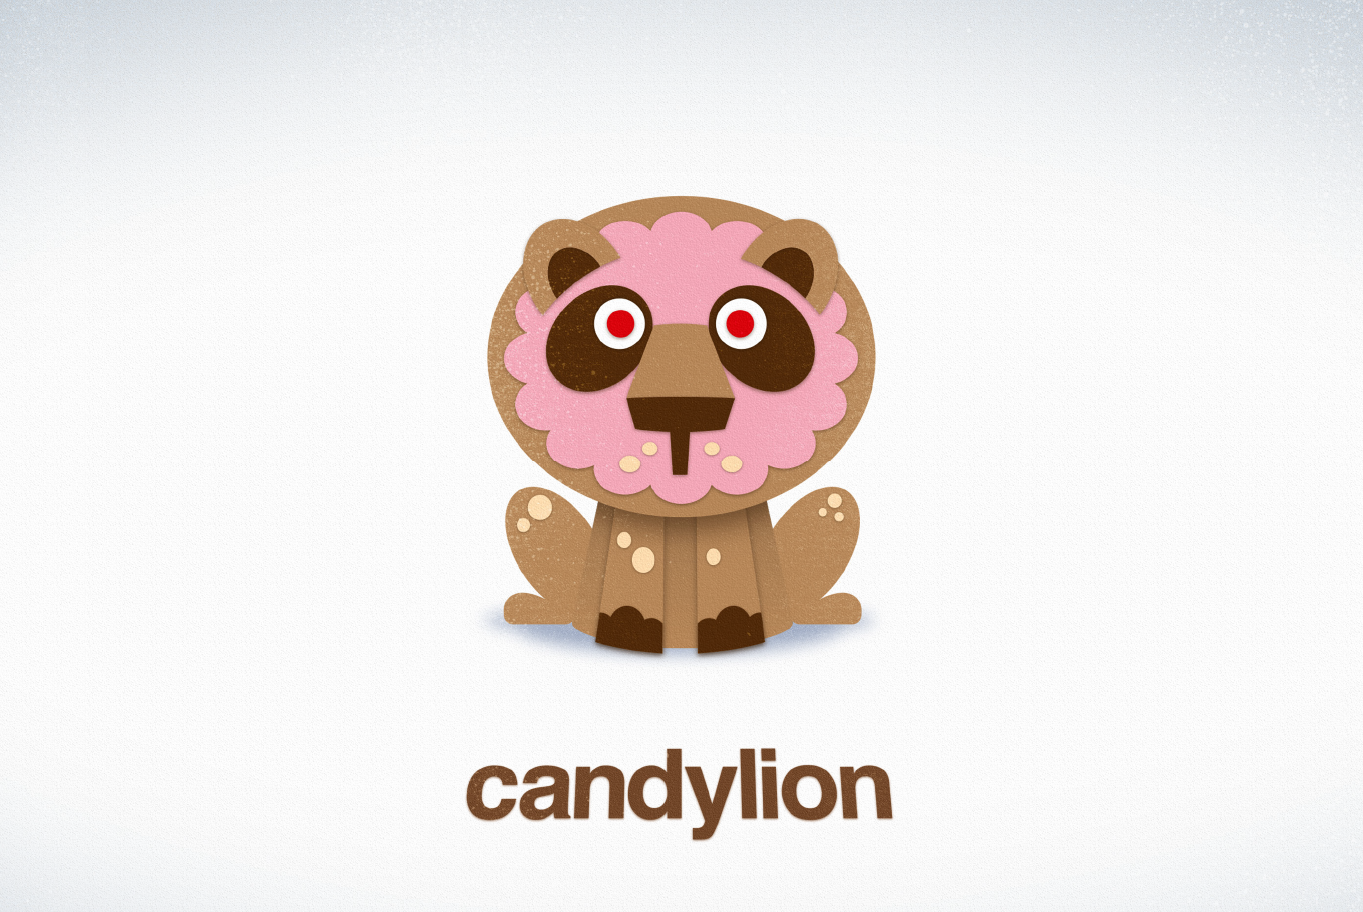 Image of Candylion - a pink cartoon lion